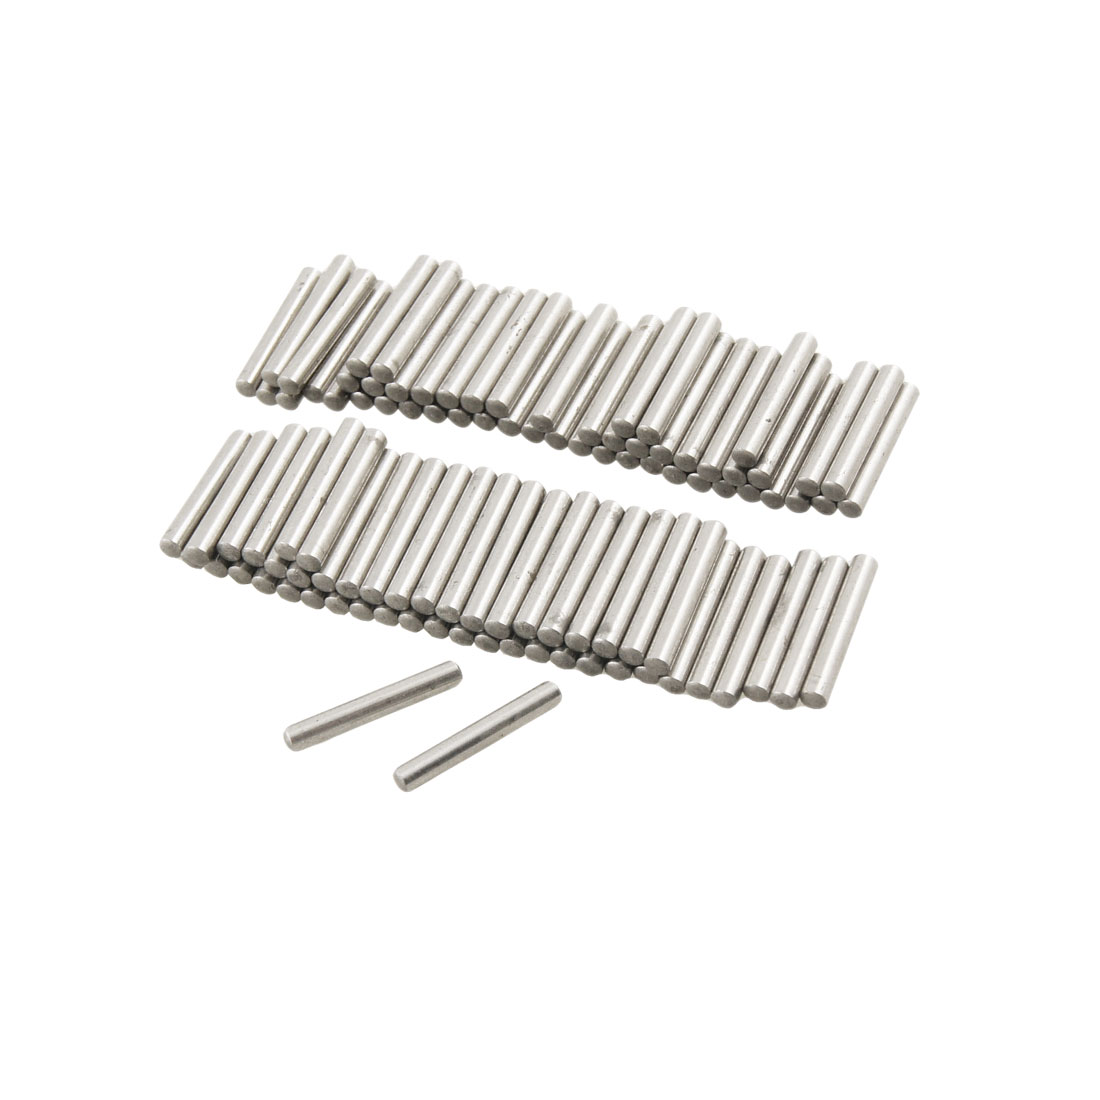 100 Pcs Stainless Steel 2.1mm x 15.8mm Dowel Pins Fasten Elements